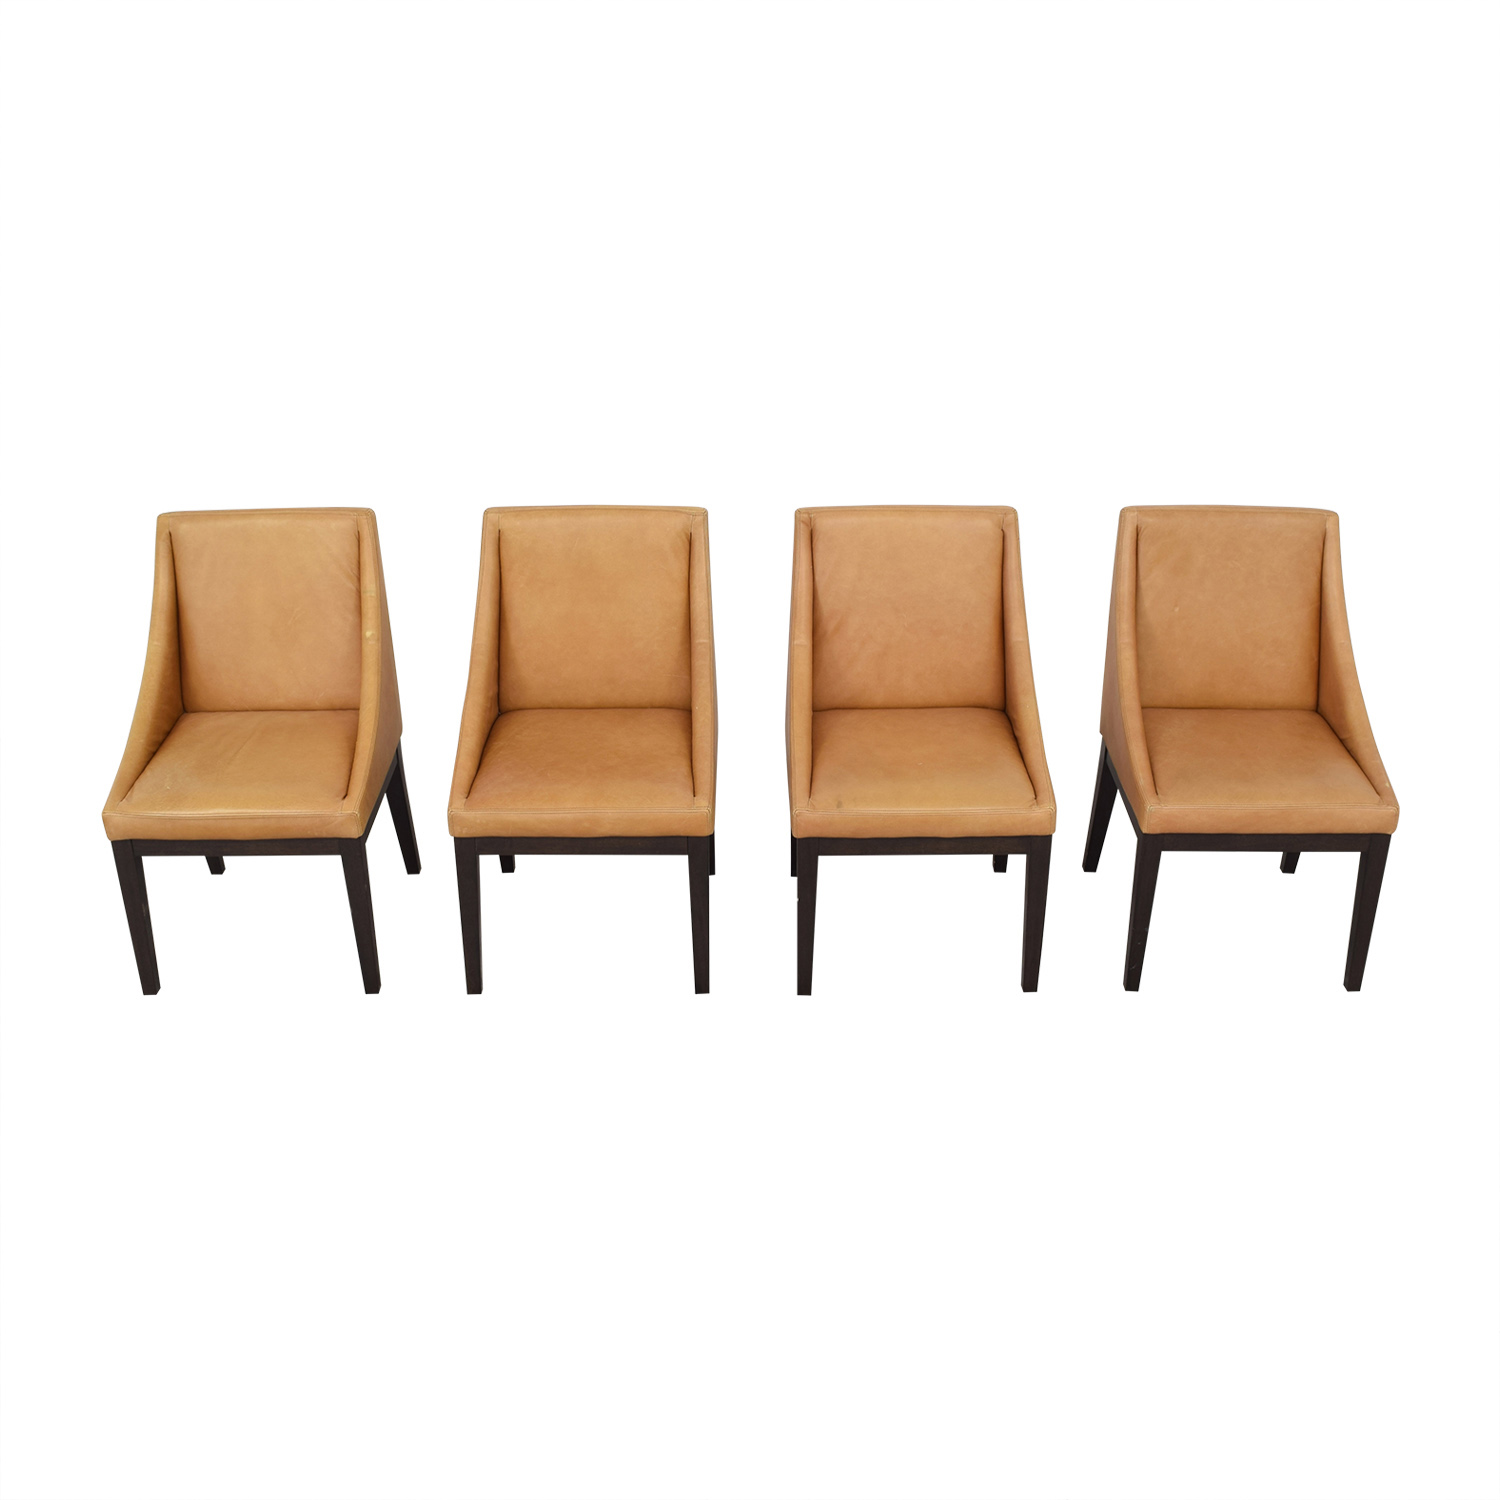 West Elm West Elm Curved Leather Chairs Chairs